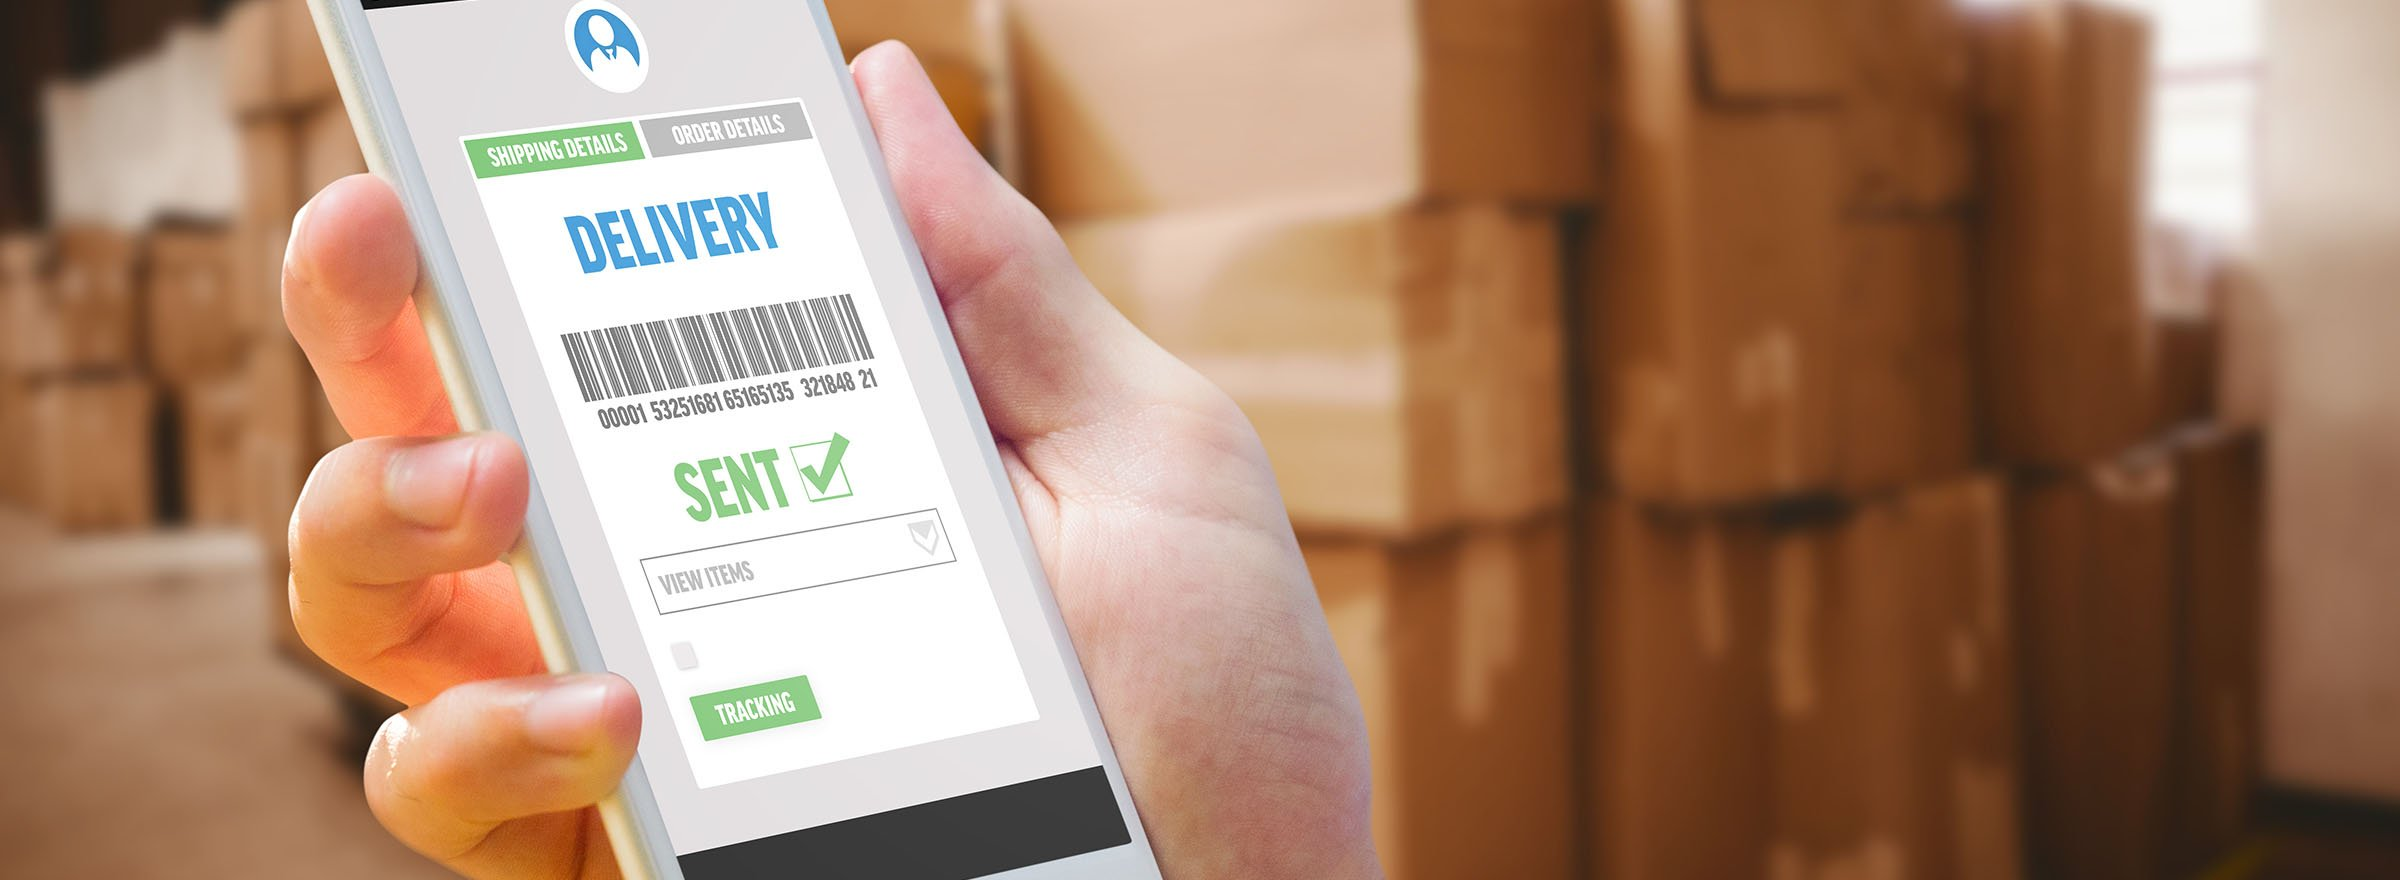 person viewing shipping status on smartphone with boxes stacked in background